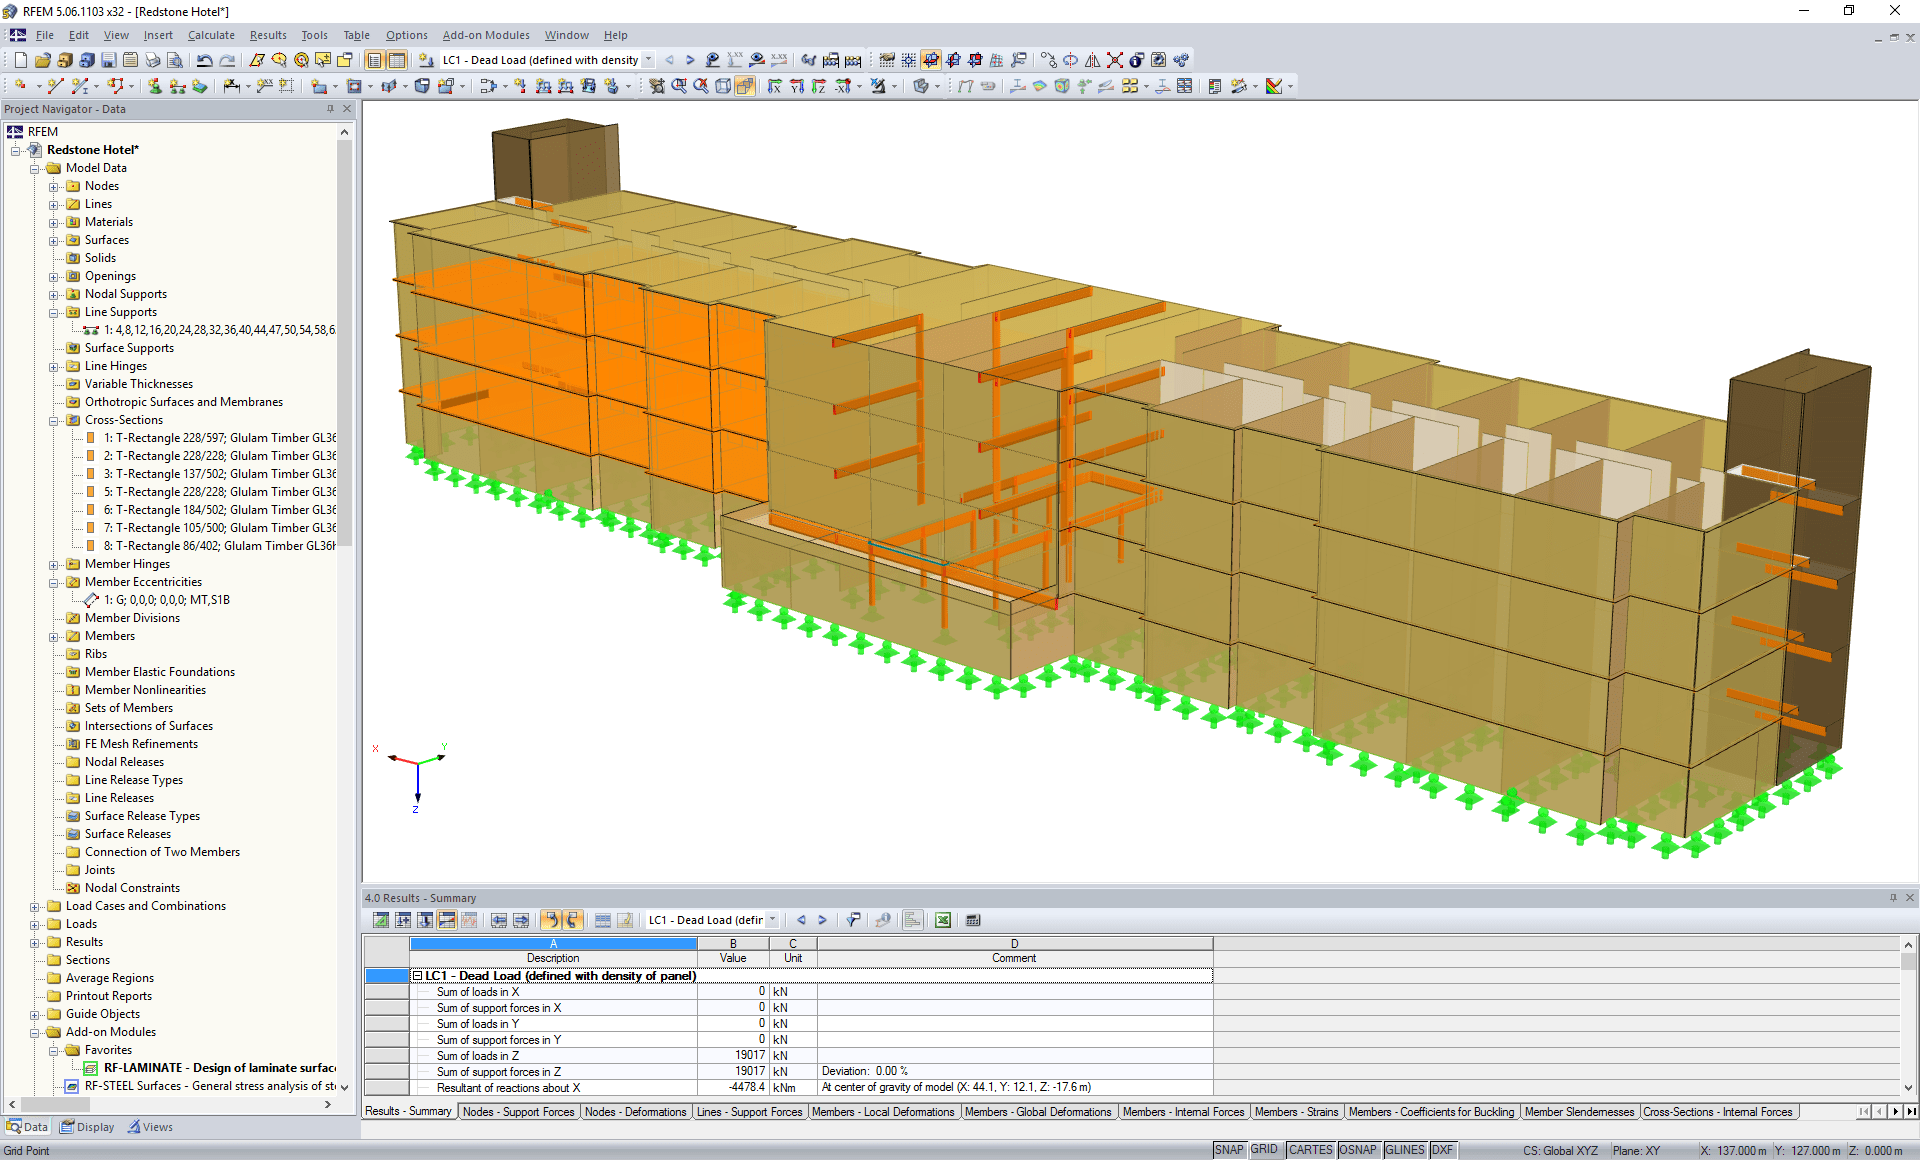 3D model of hotel structure in RFEM